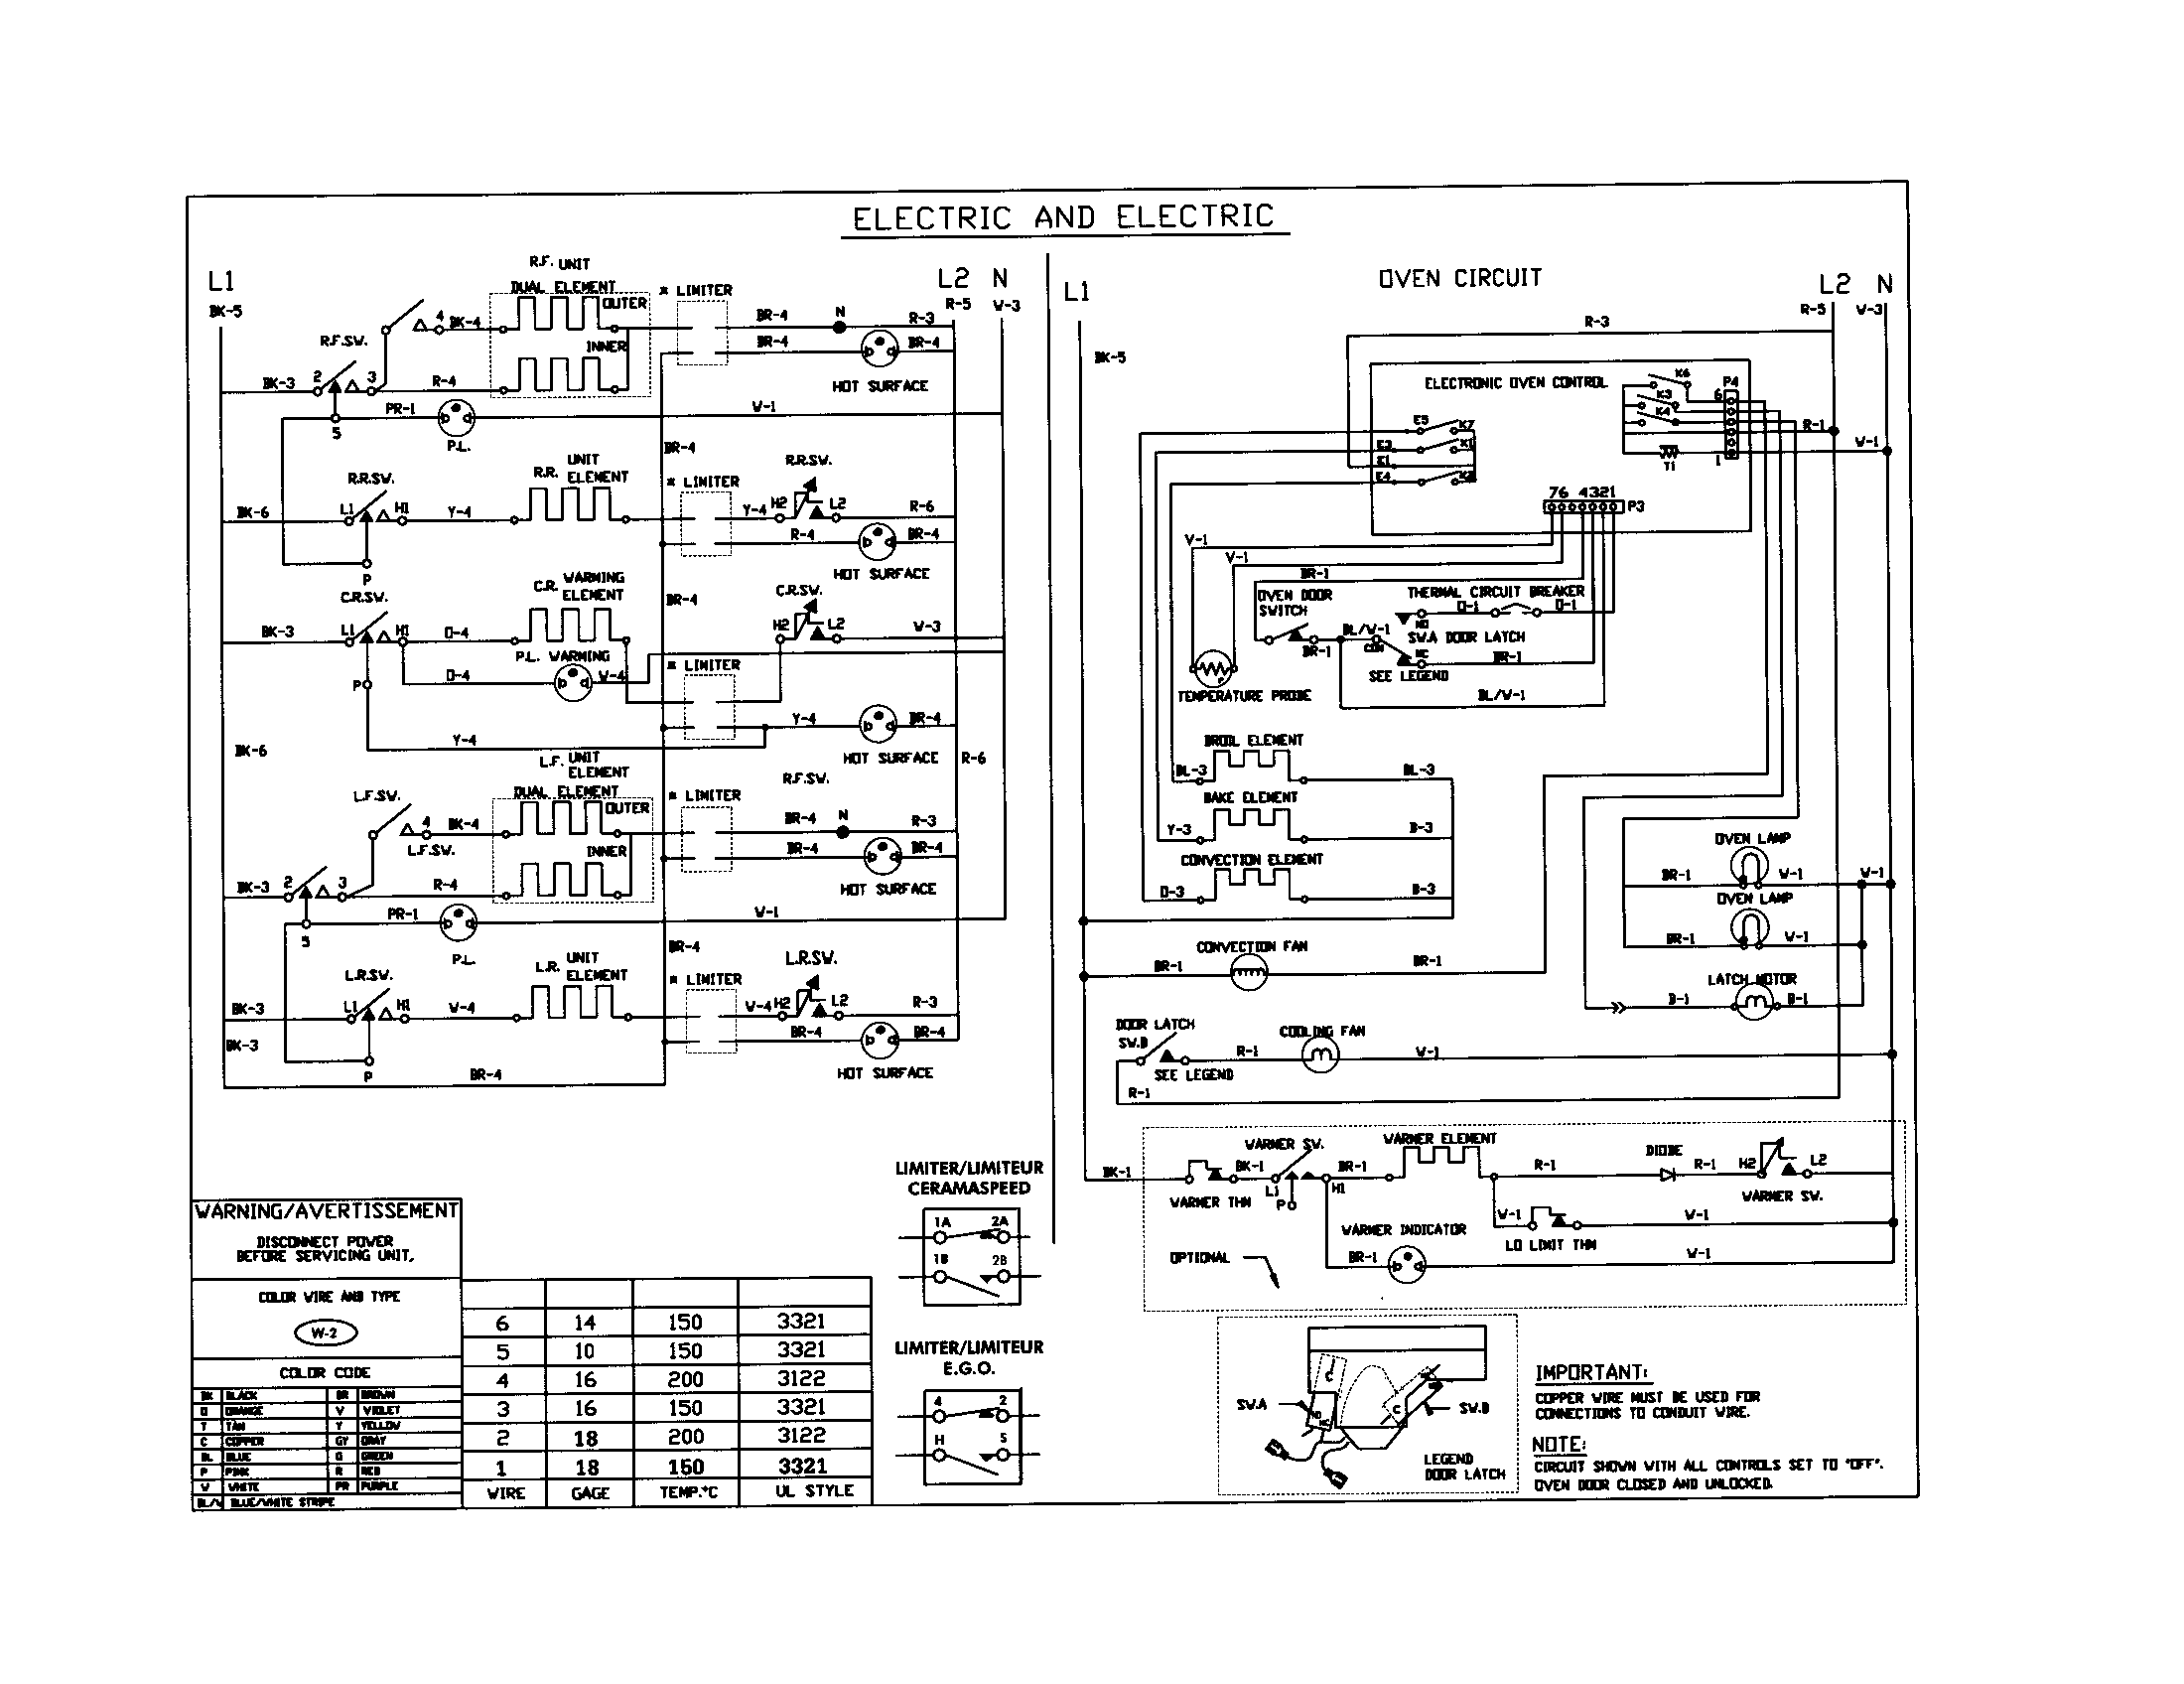 P0050376 00005?resize\=665%2C512 kenmore dryer model 11087872602 wiring diagram kenmore wiring  at gsmx.co